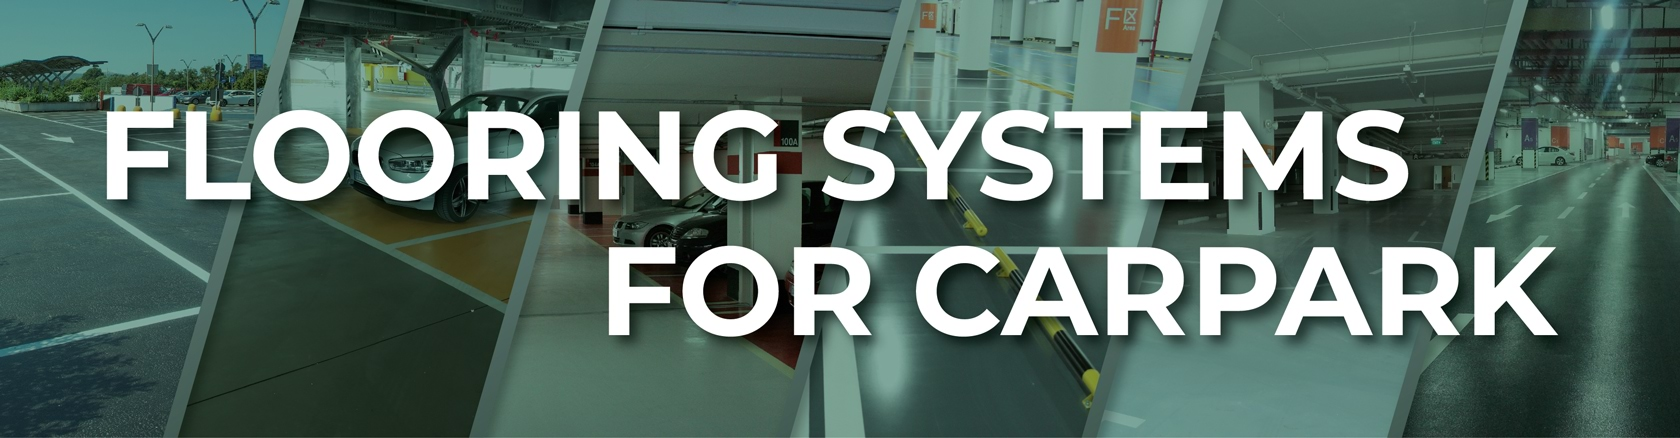 Flooring-systems-for-carpark-slider-Landing-page_1680x438px